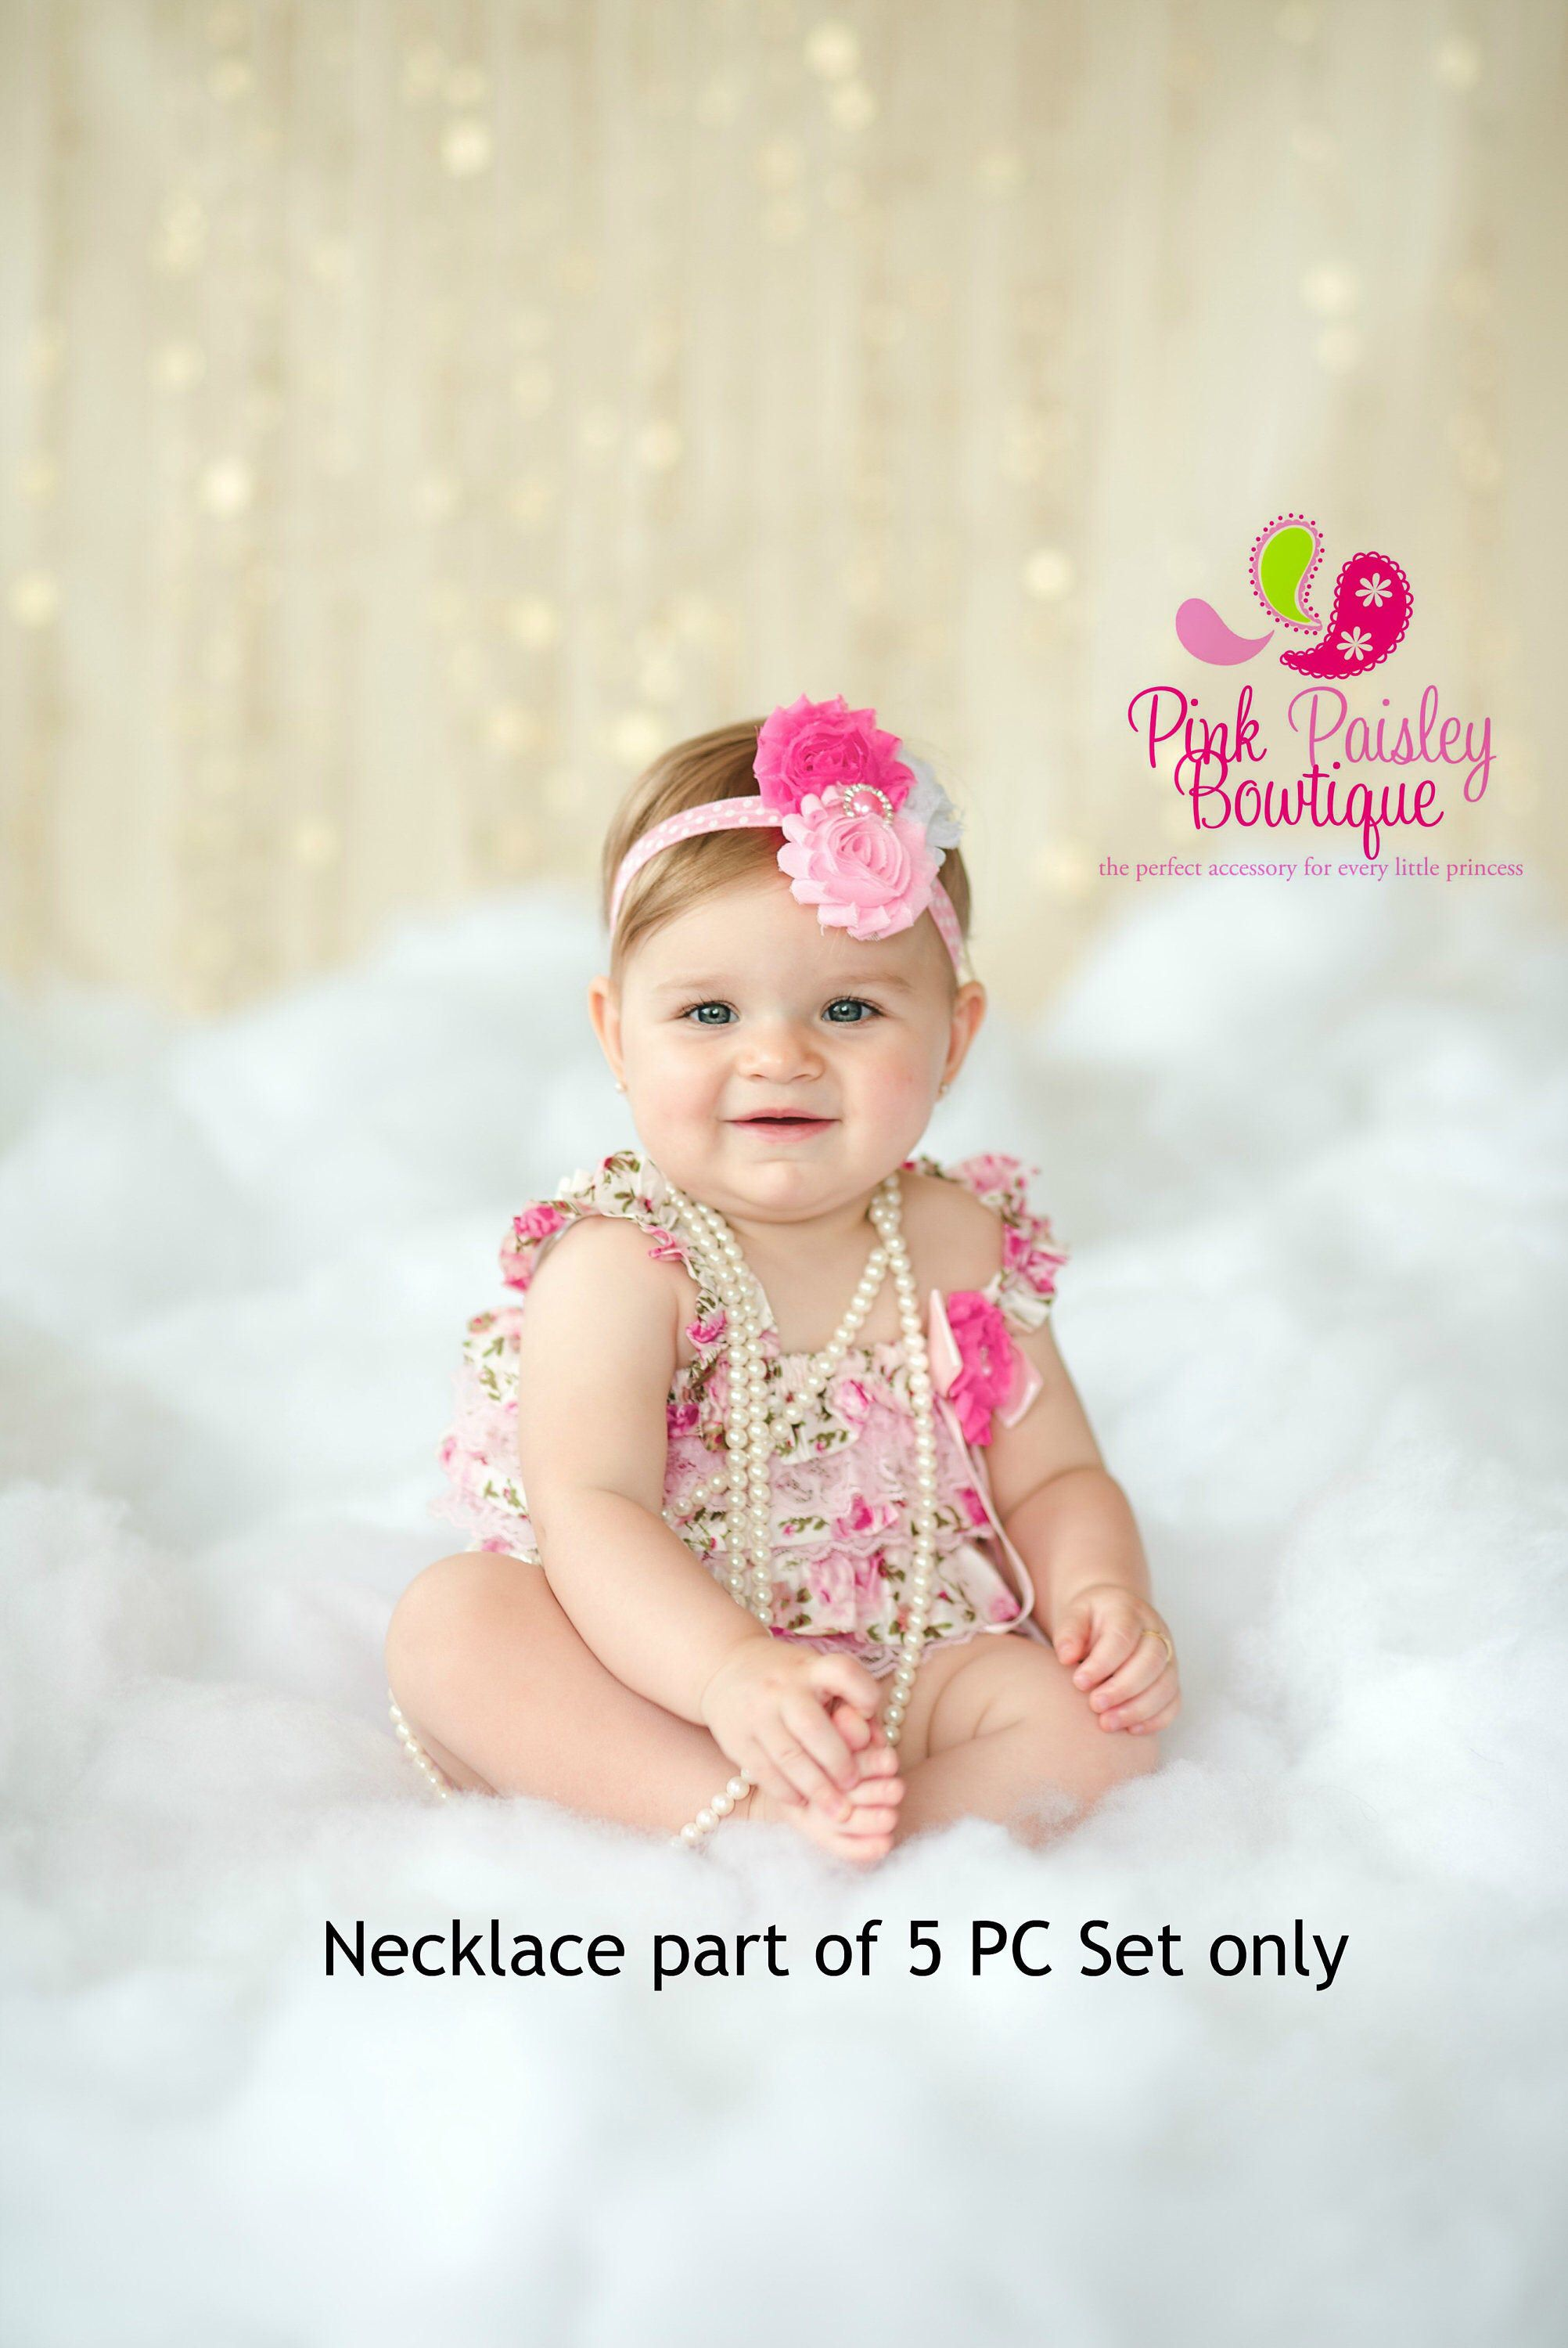 Baby Girl Clothes and baby headband, Baby girl 1st birthday dress Princess Birthday, Newborn Photo Outfit, Cake Smash Outfit, Floral Outfit #babygirlheadbands